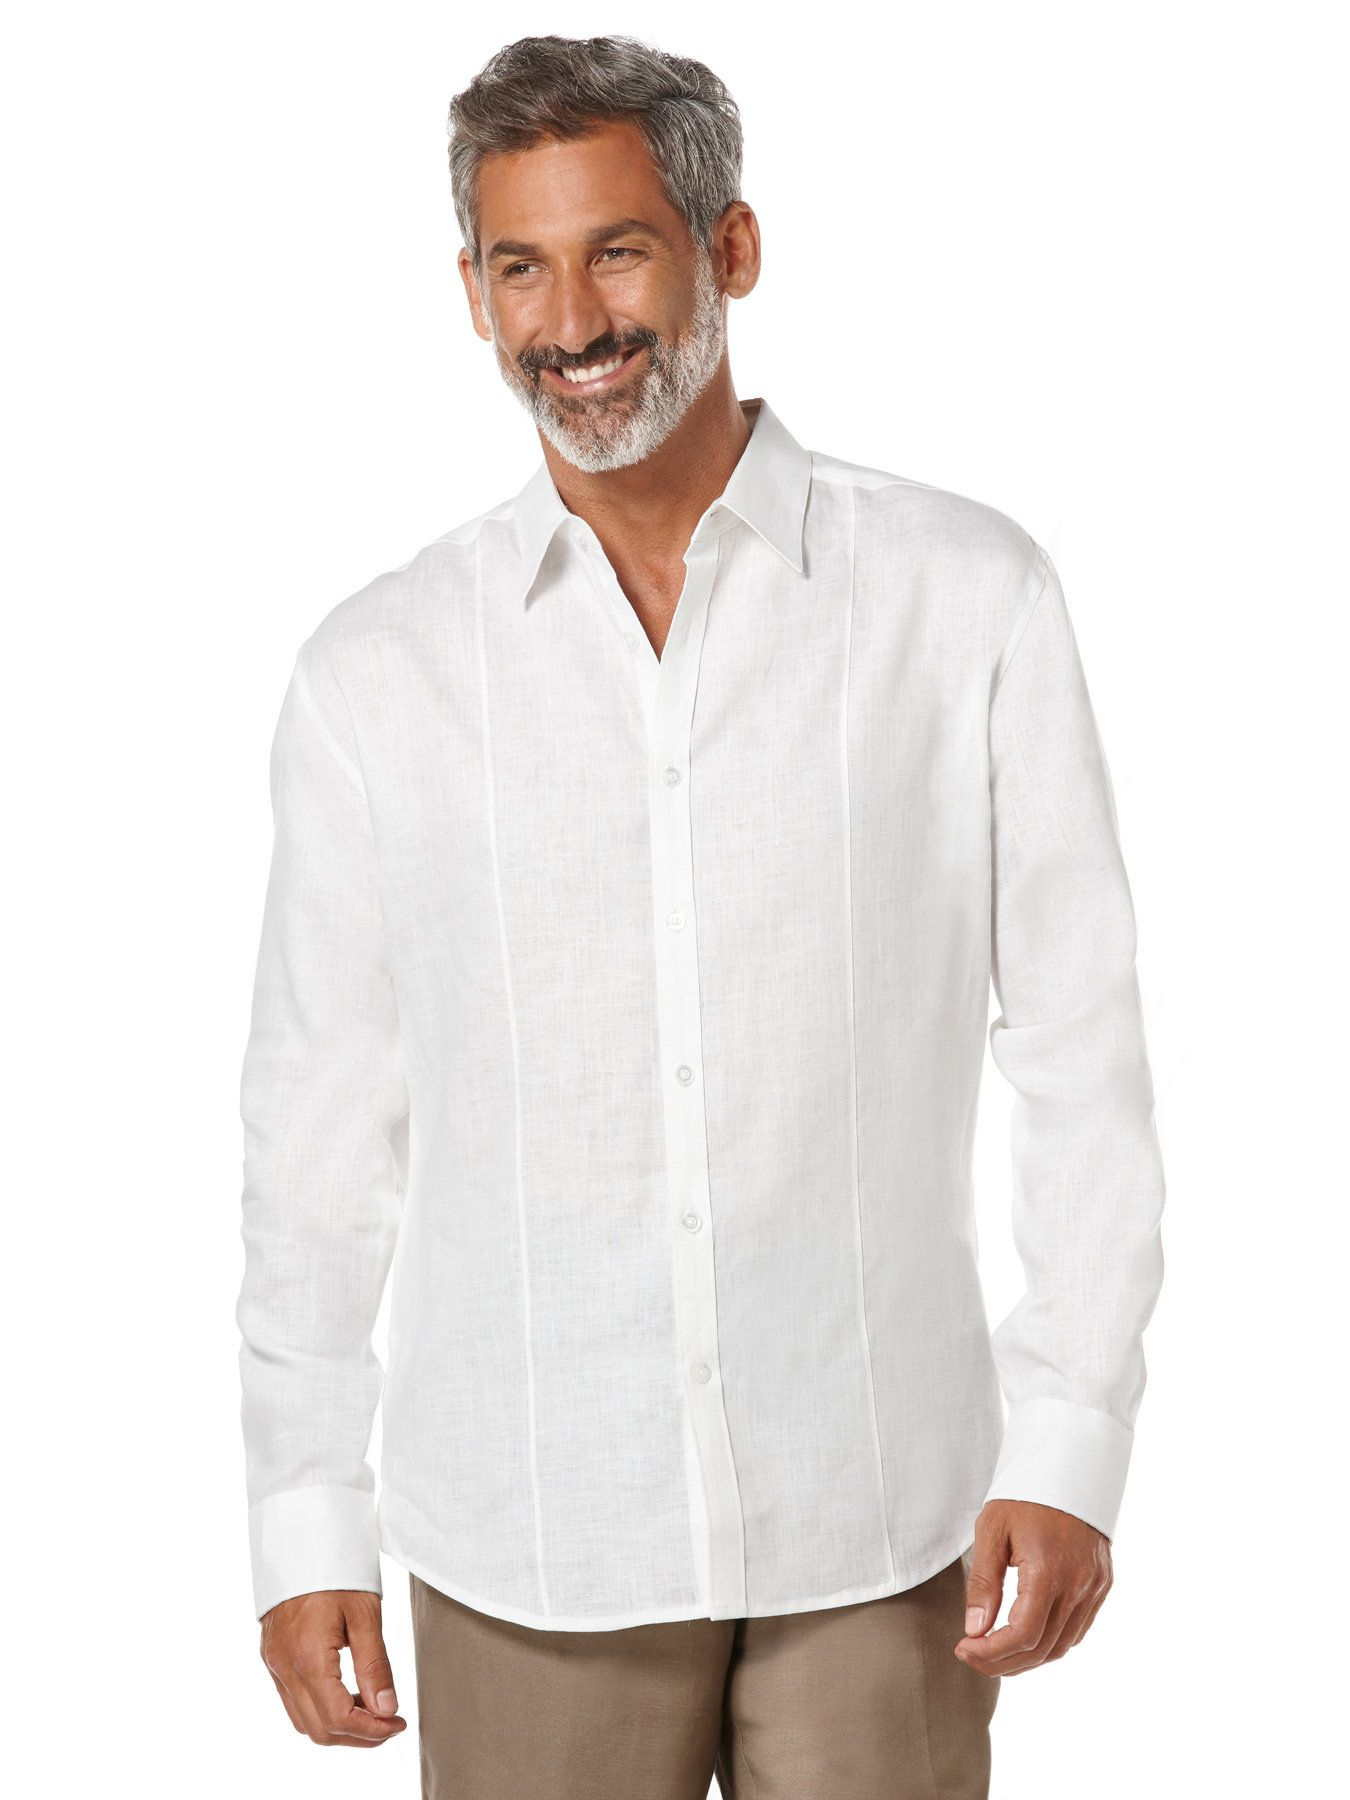 Dress Shirts Meant To Be Worn Untucked